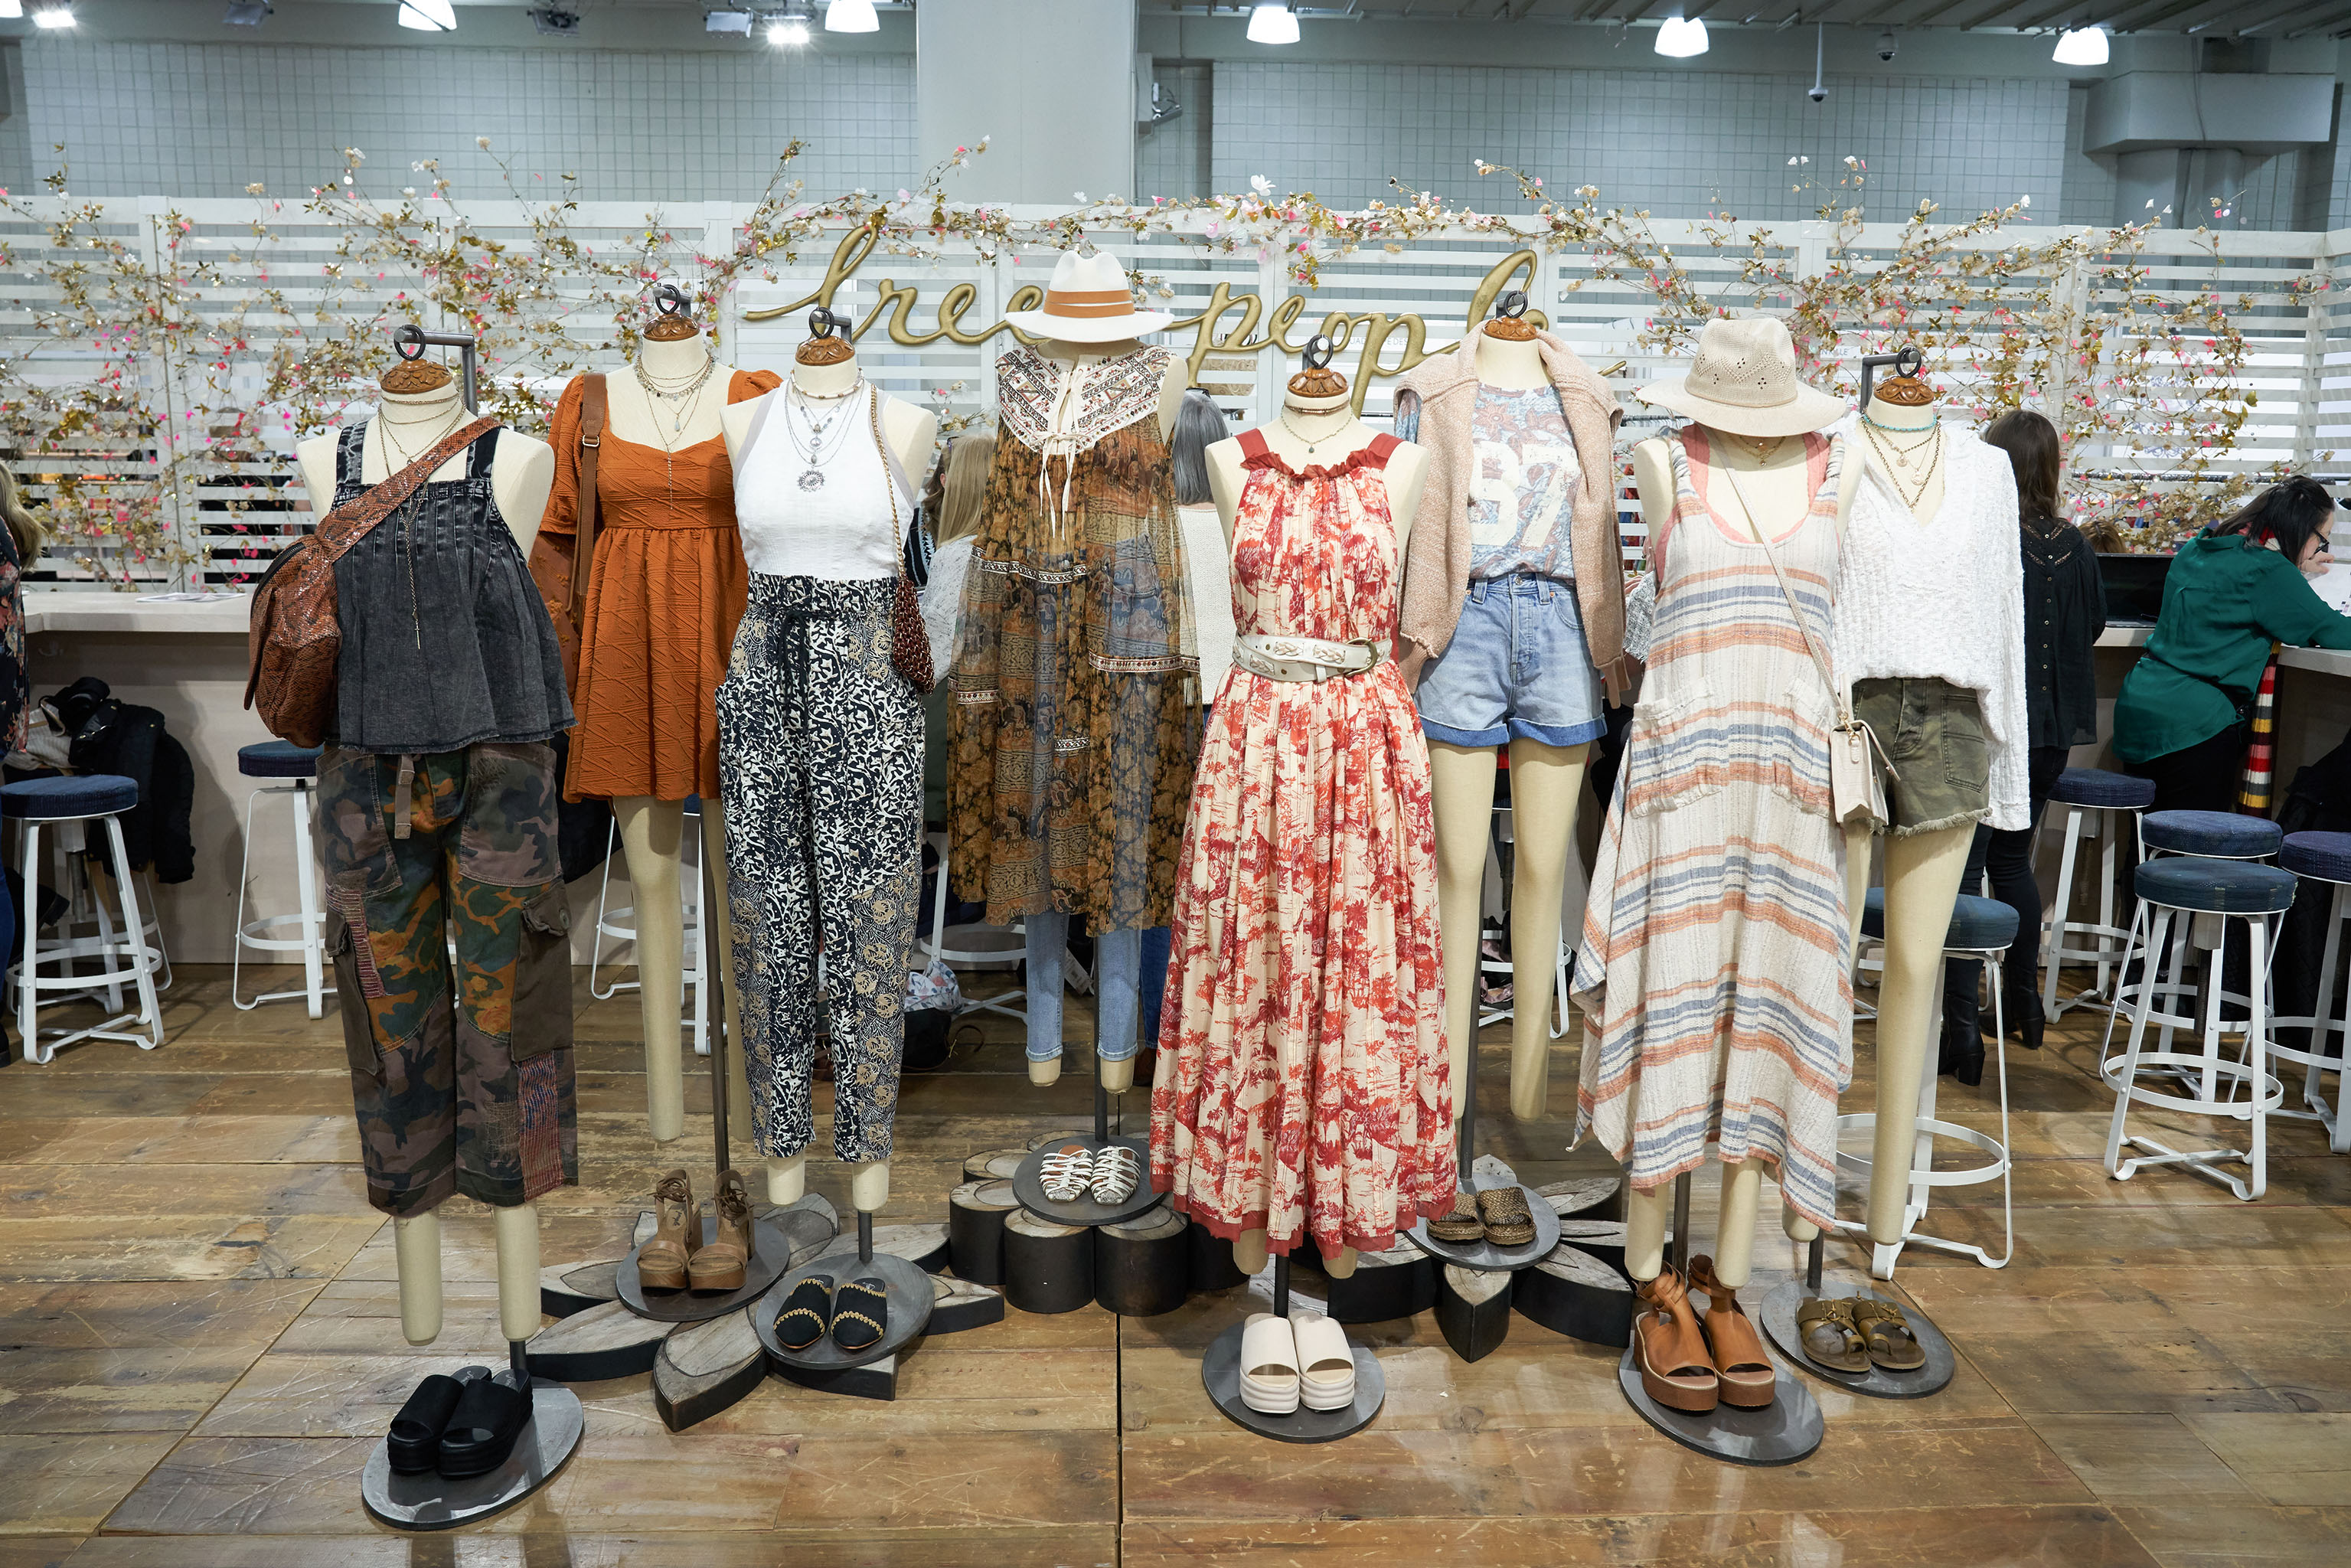 Some printed looks from Free People.